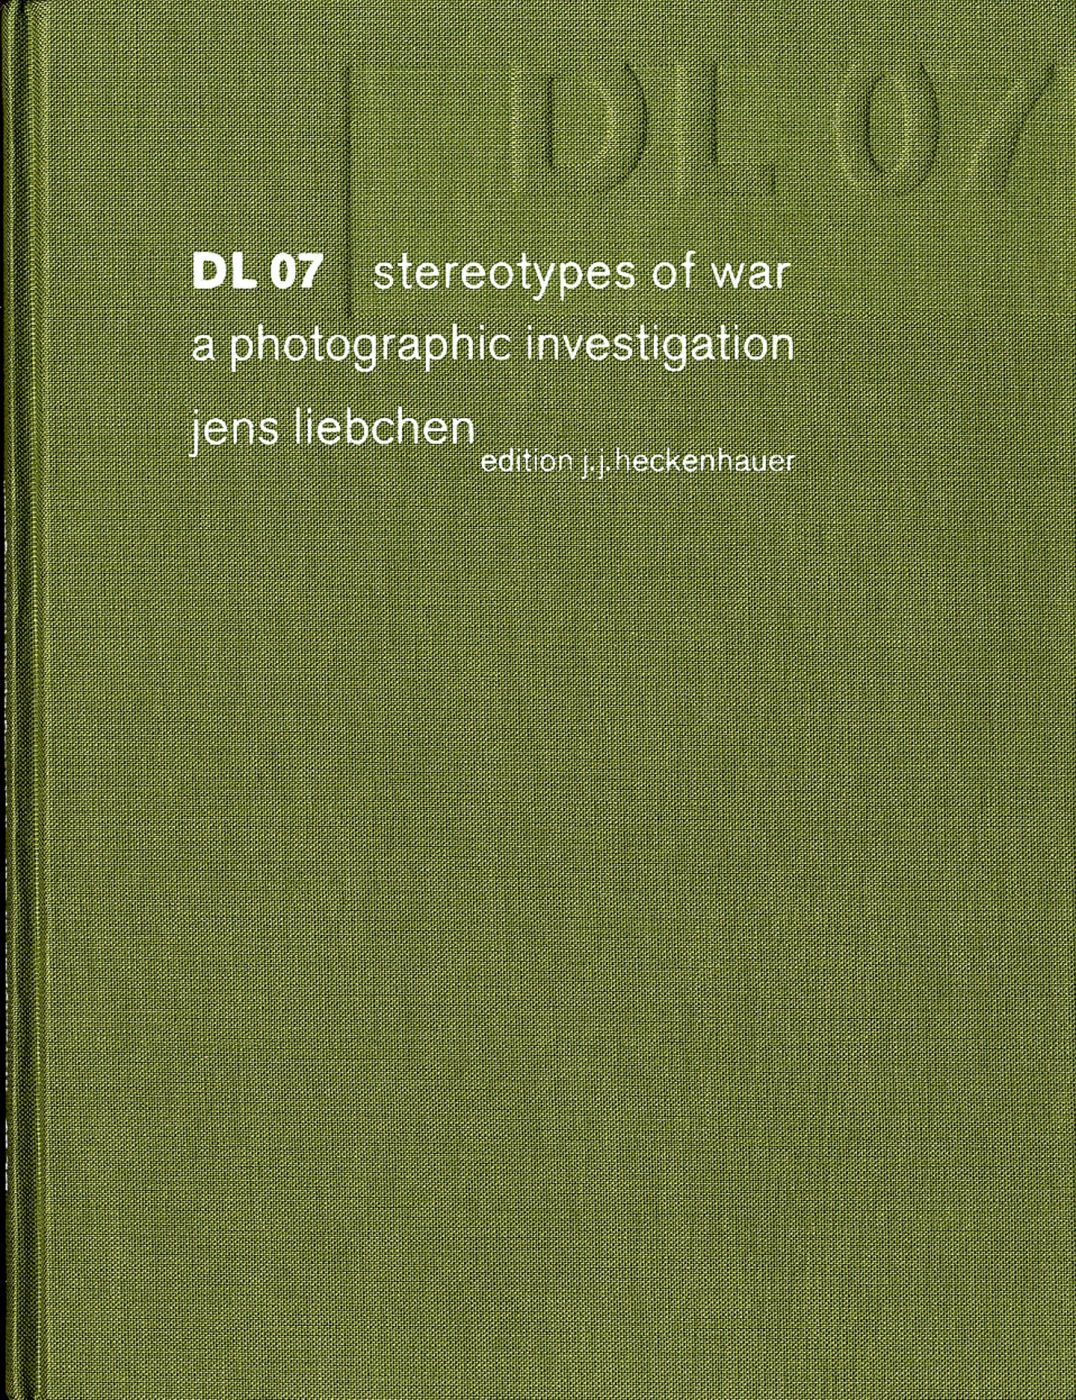 DL 07: Stereotypes of War, a Photographic Investigation, Limited Edition